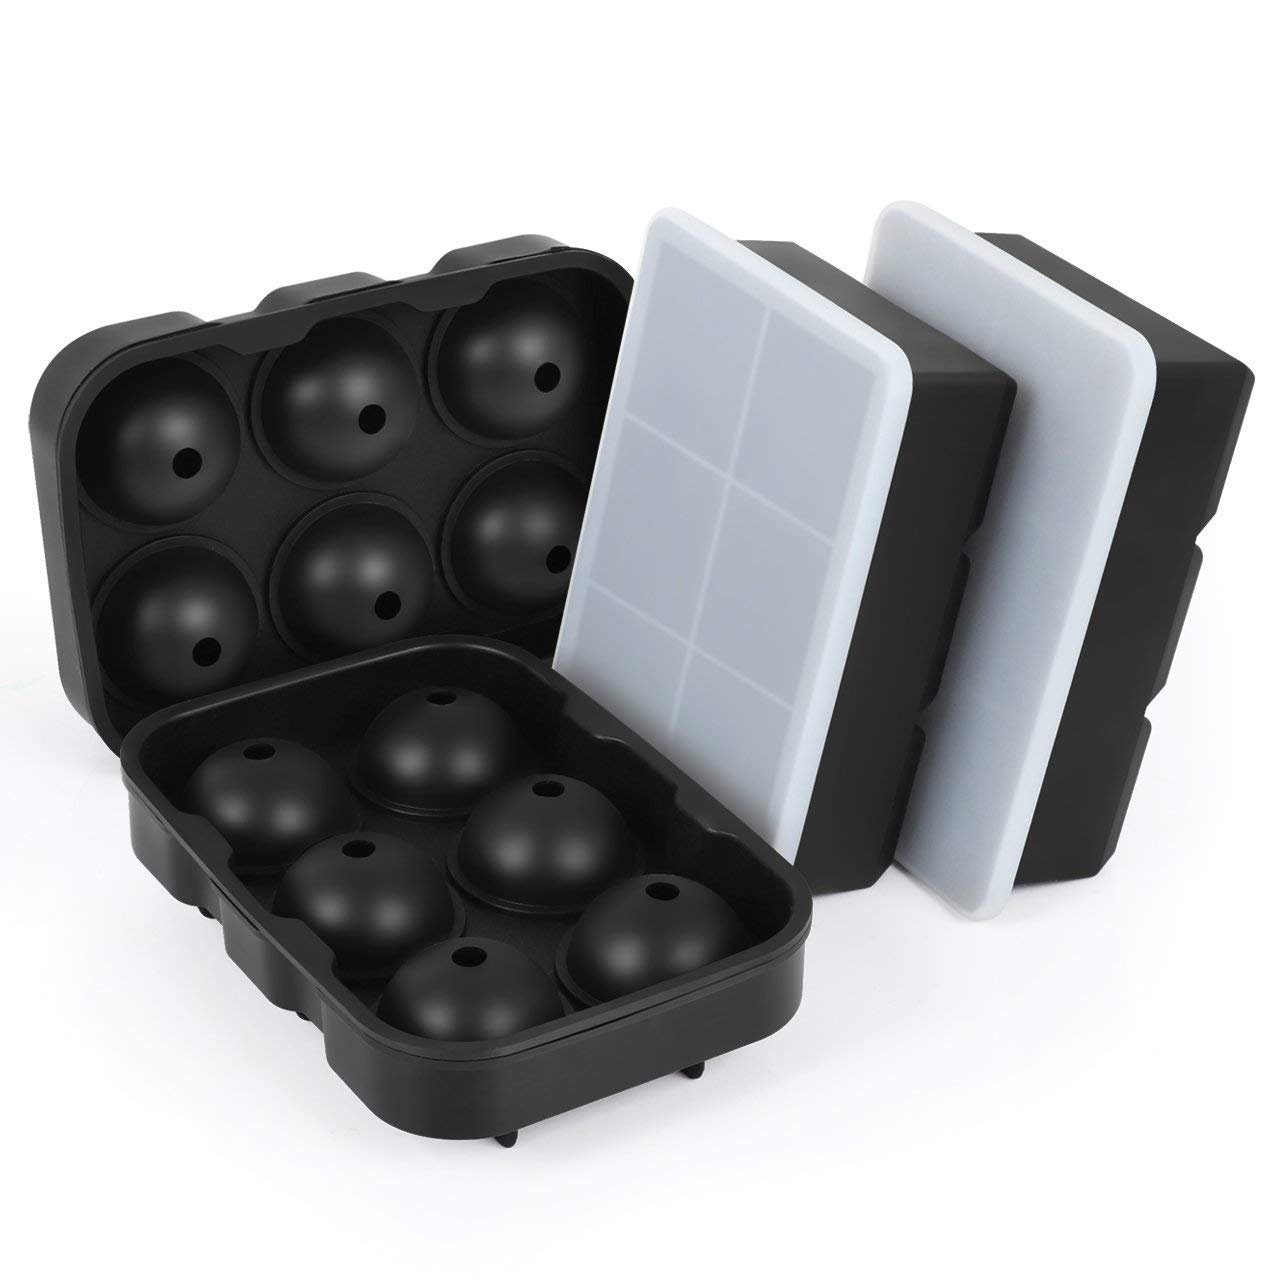 Kootek 4 Set Silicone Ice Cube Trays with Lids, BPA Free Large Square Molds and Sphere Ice Ball Maker, Easy Release Reusable Tray Flexible Mold for Chilling Whiskey Wine Cocktail Beverages Juice